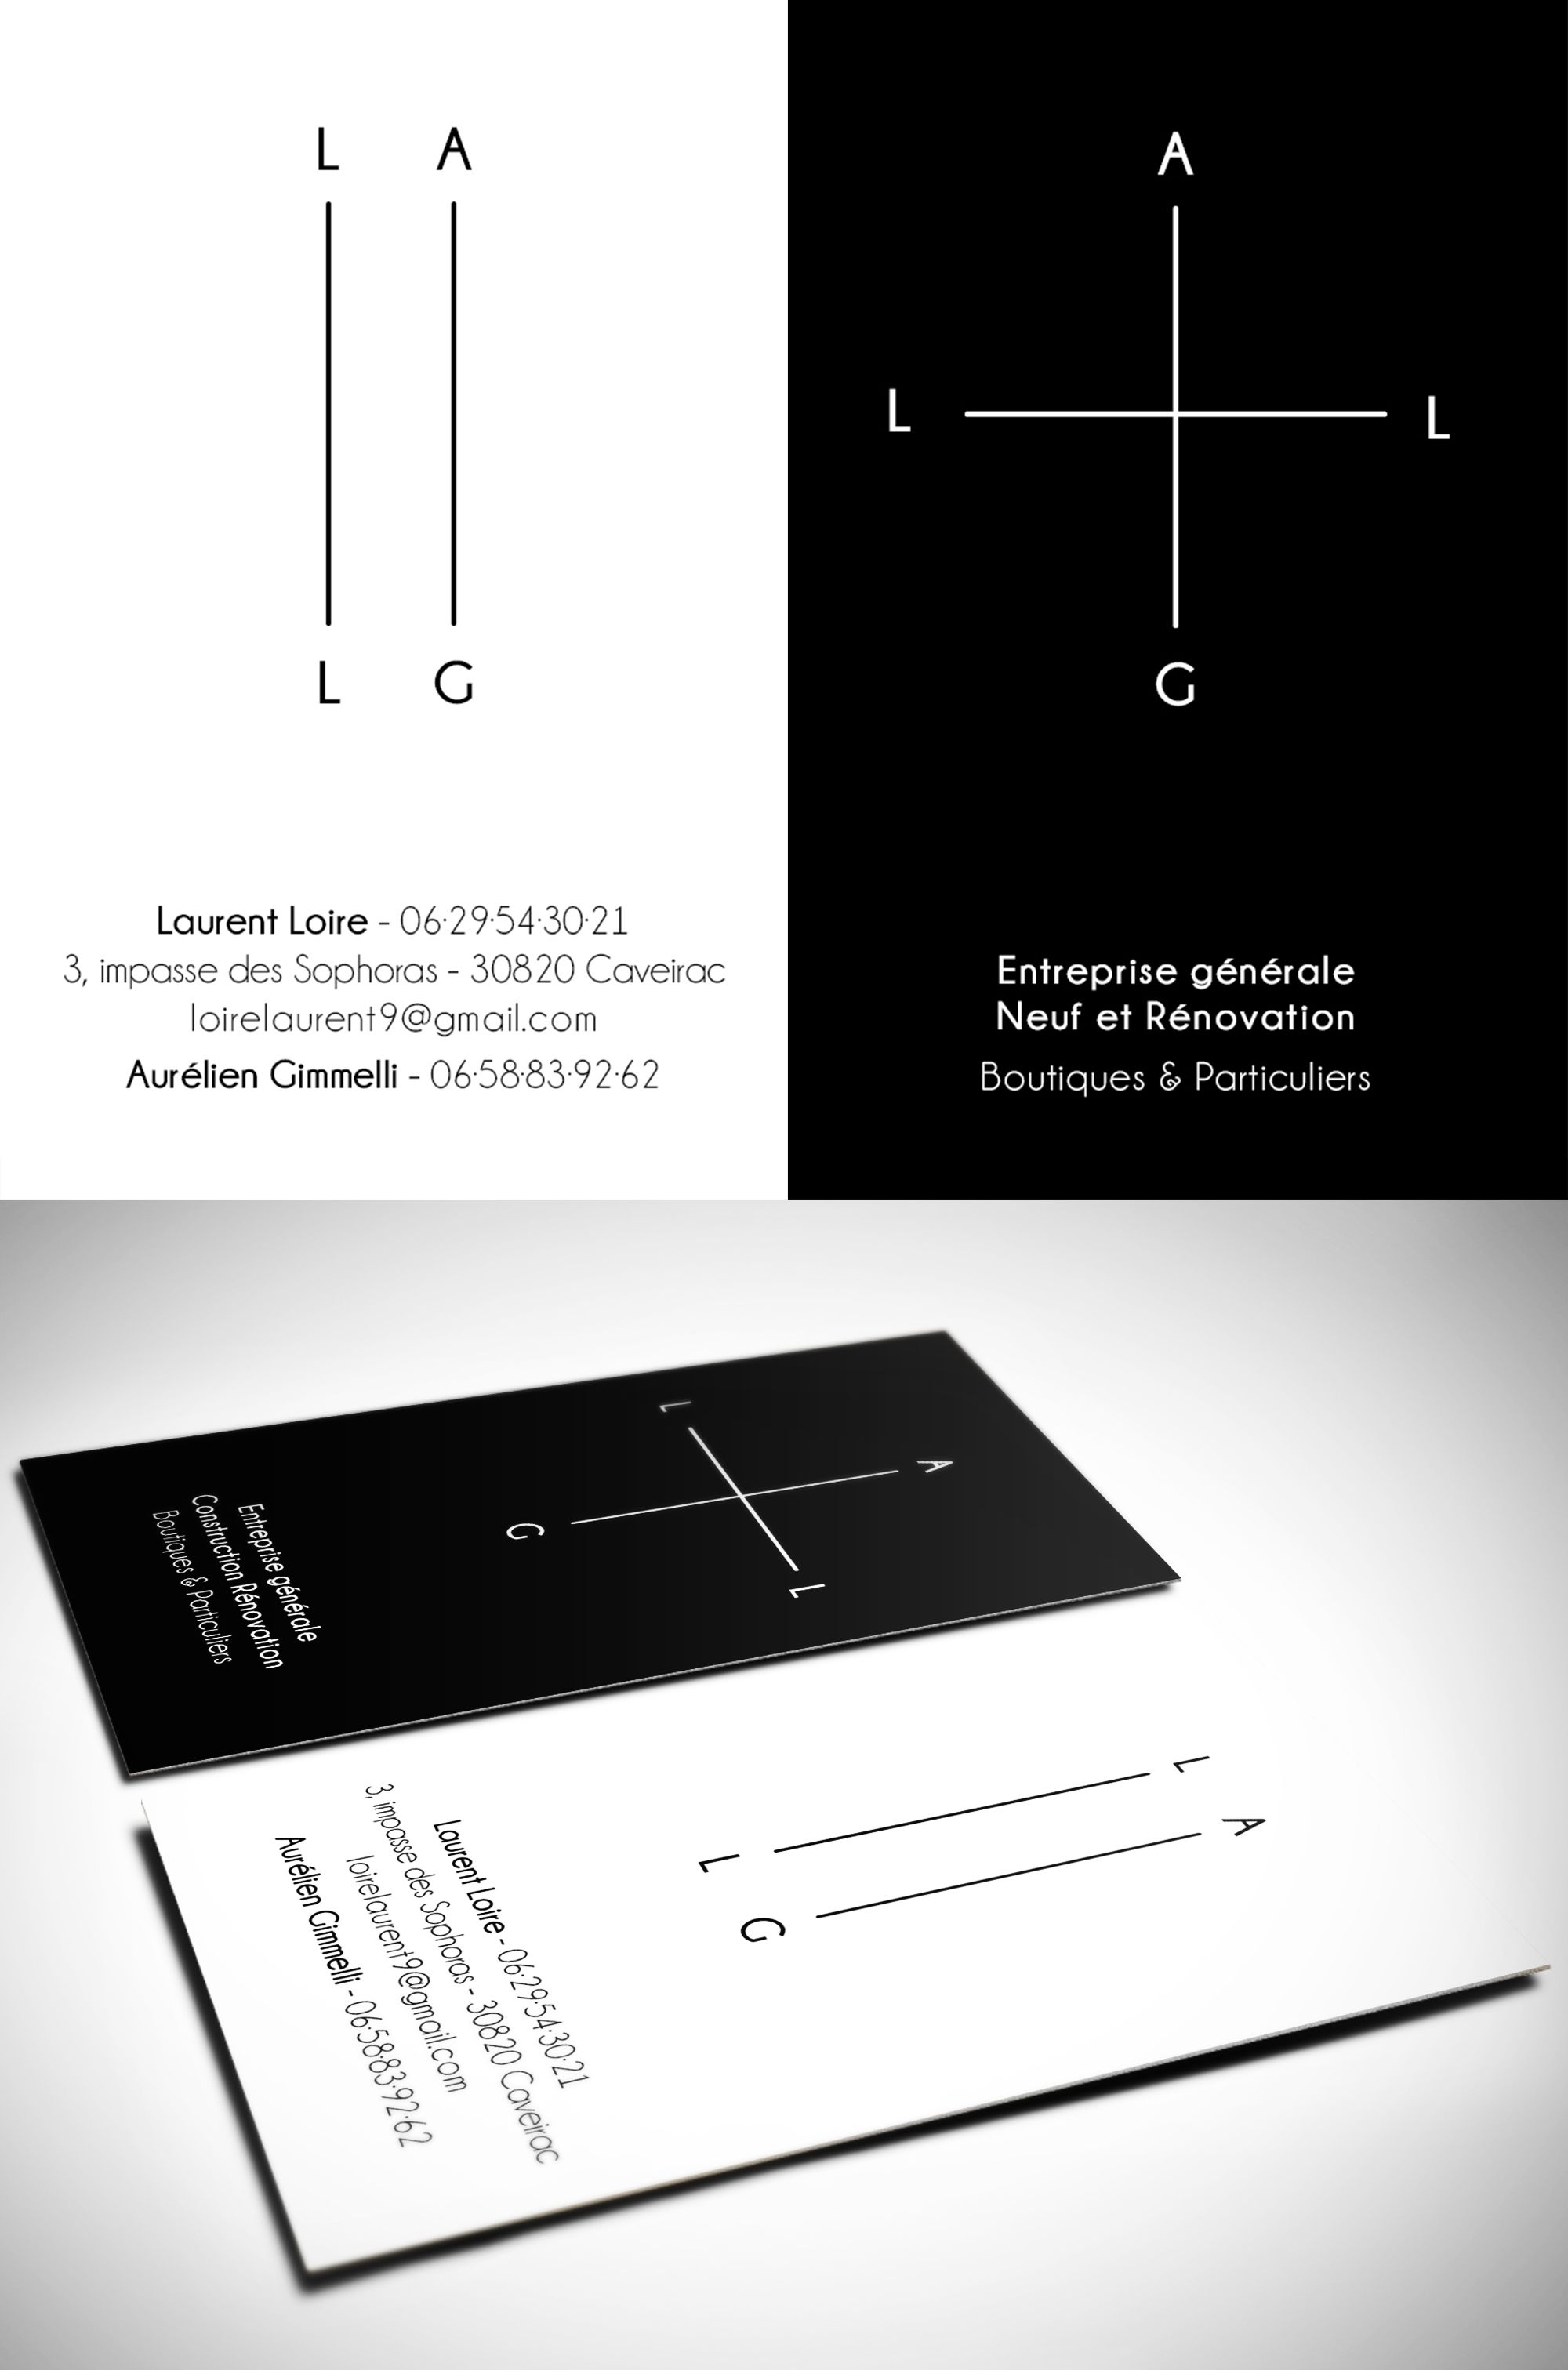 Businesscard By A Fraga Card Cartedevisite Carte Architect Design